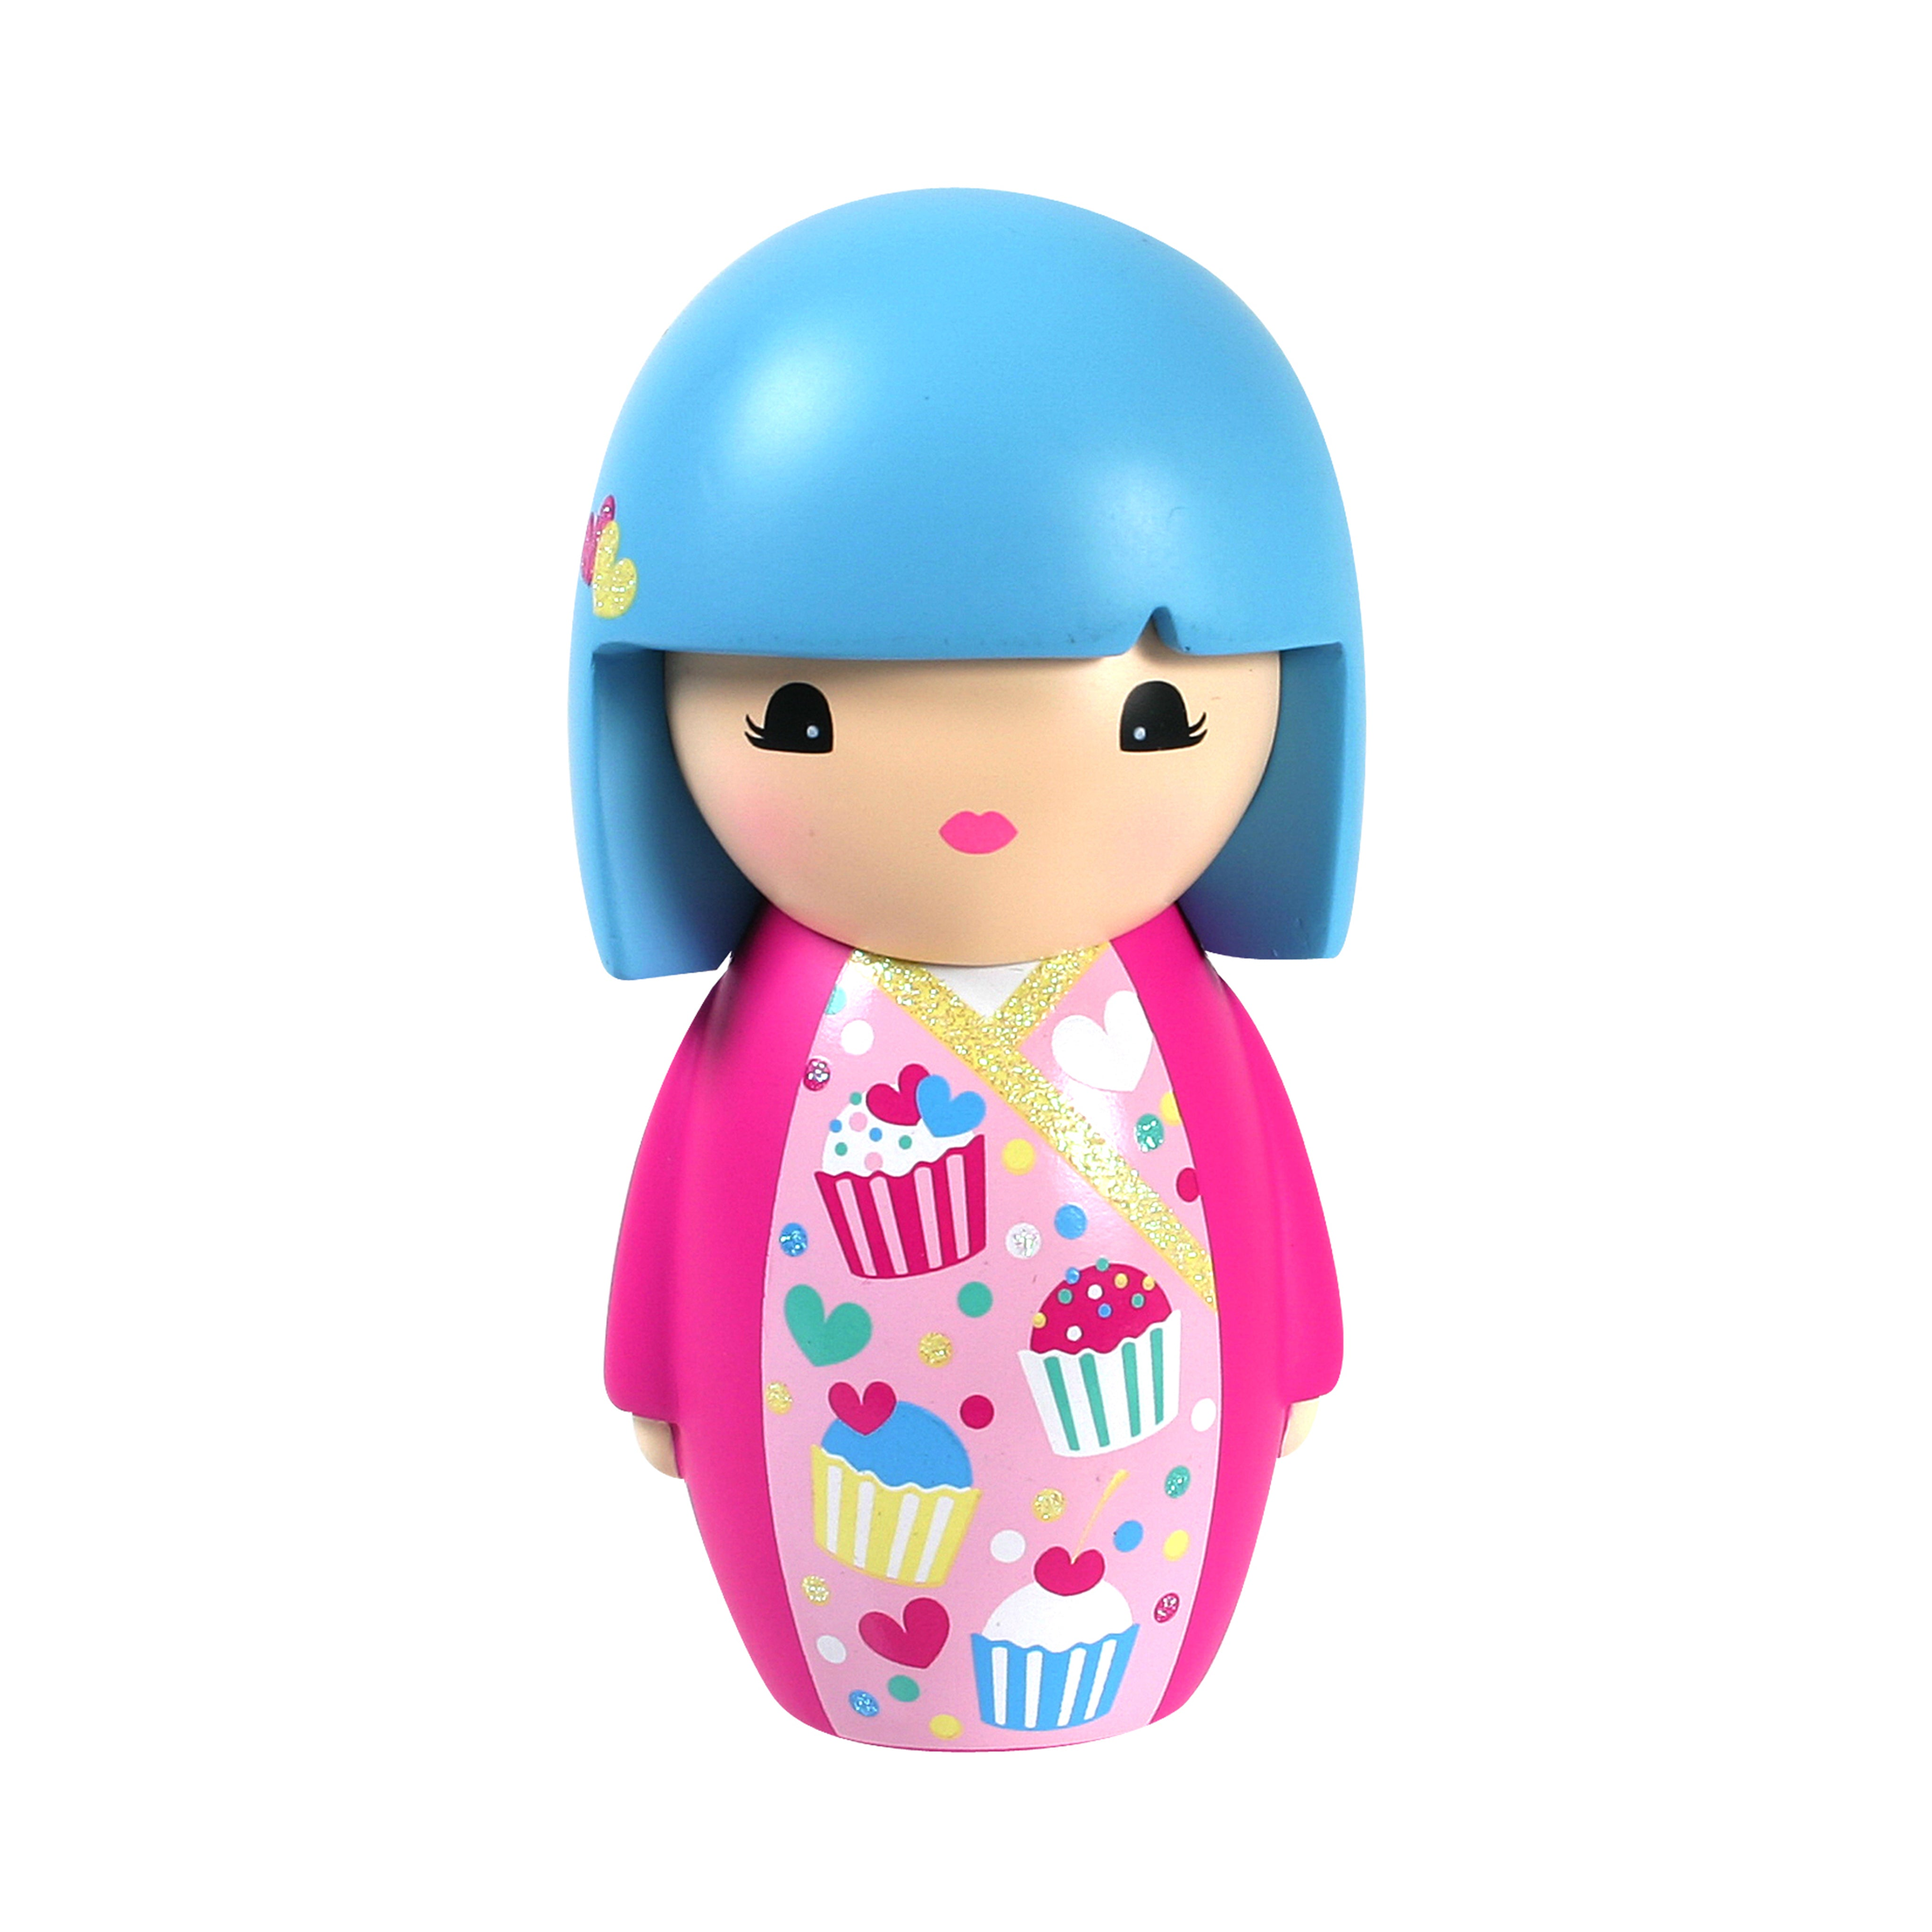 Tilly - Collectable Figurine